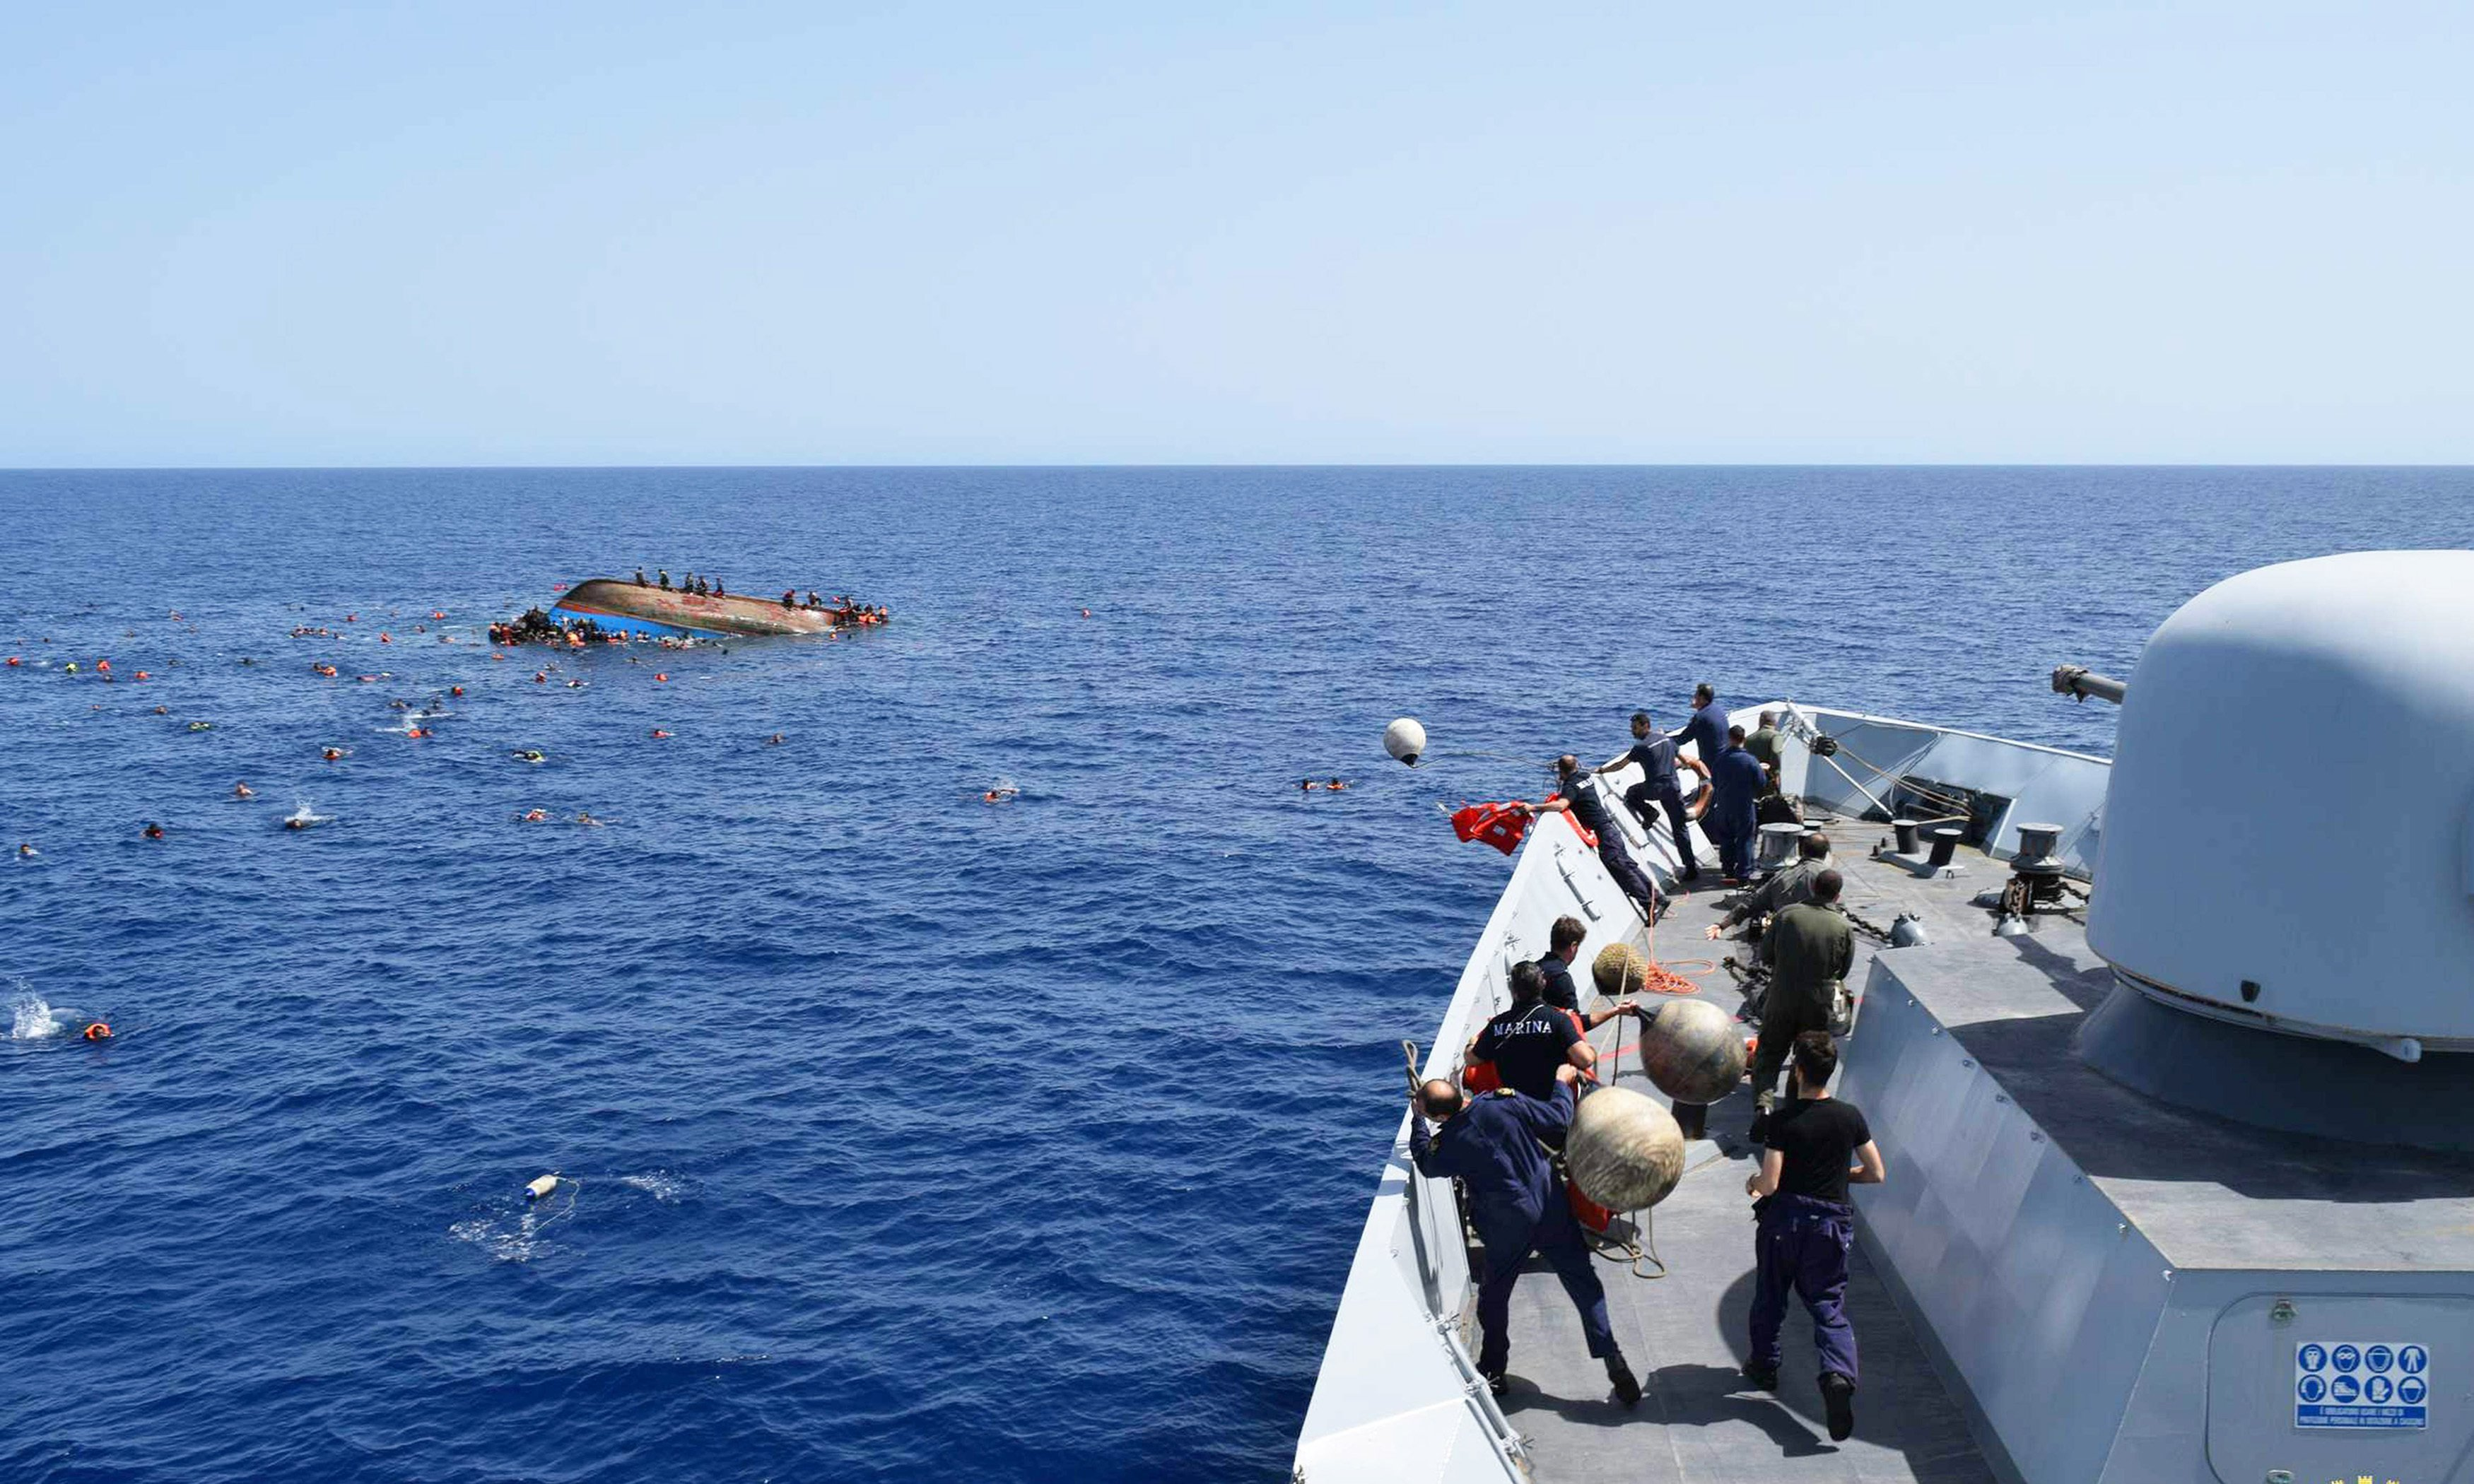 Germany, Italy Push EU Mission To Take Control Libya's Border With Niger And To Stop Migration Flow